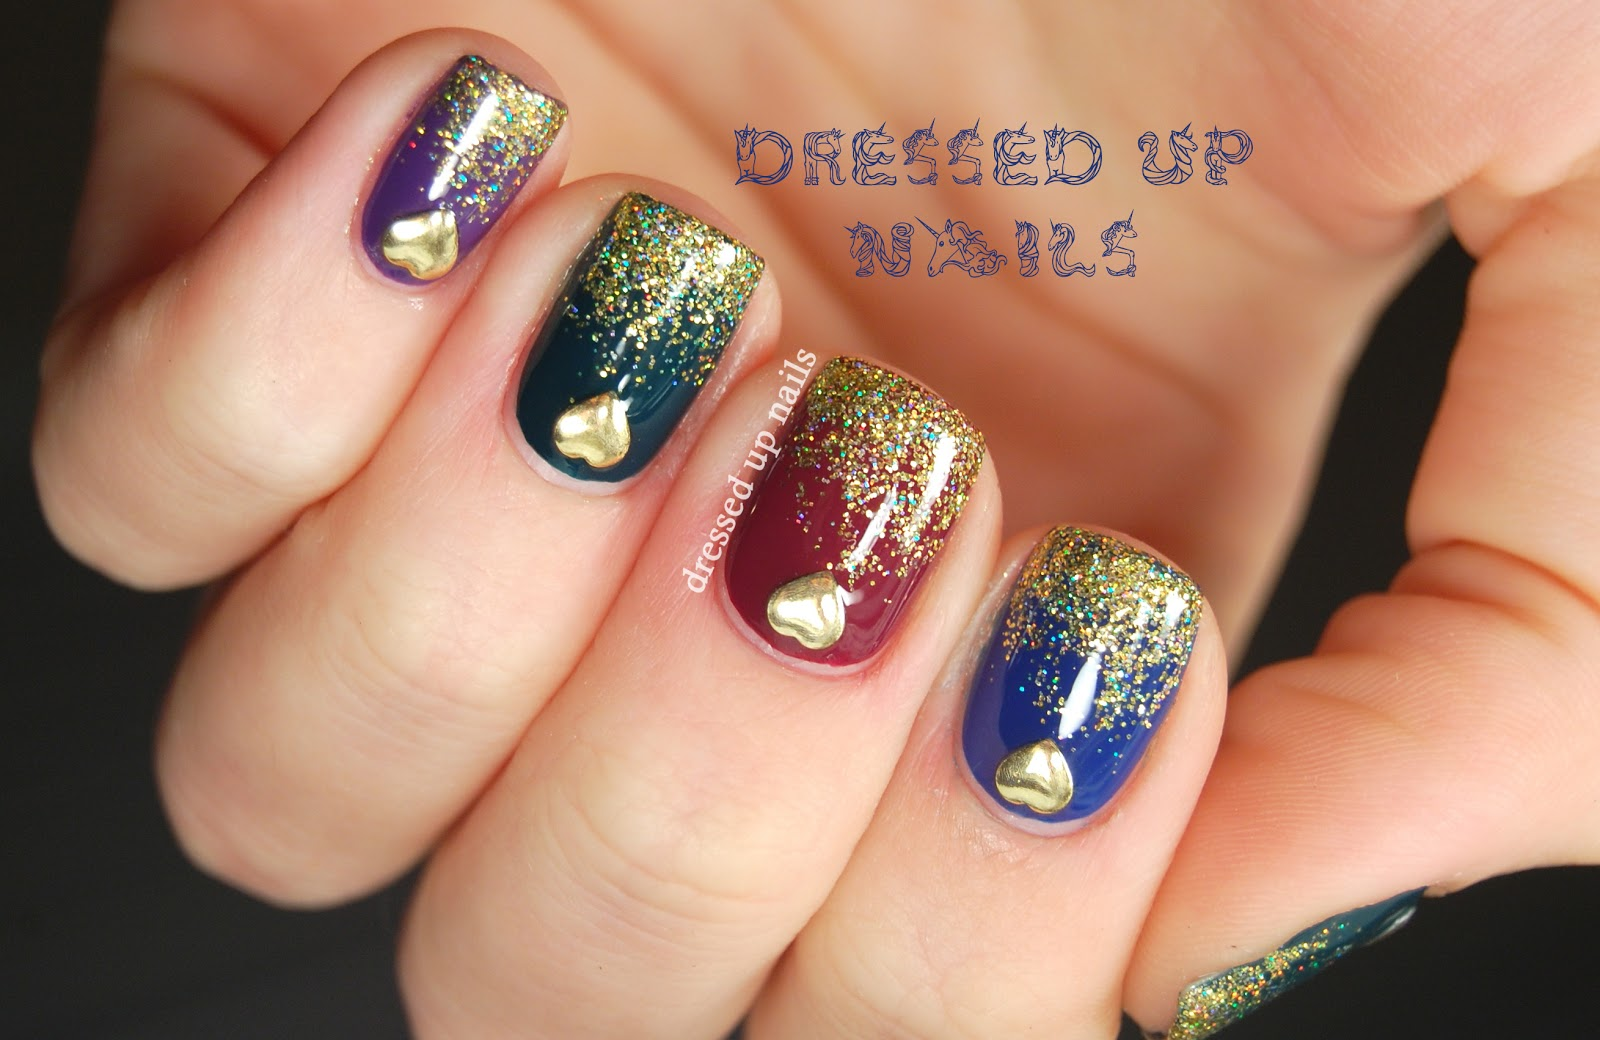 Nail Designs With Studs | Nail Designs, Hair Styles, Tattoos and ...